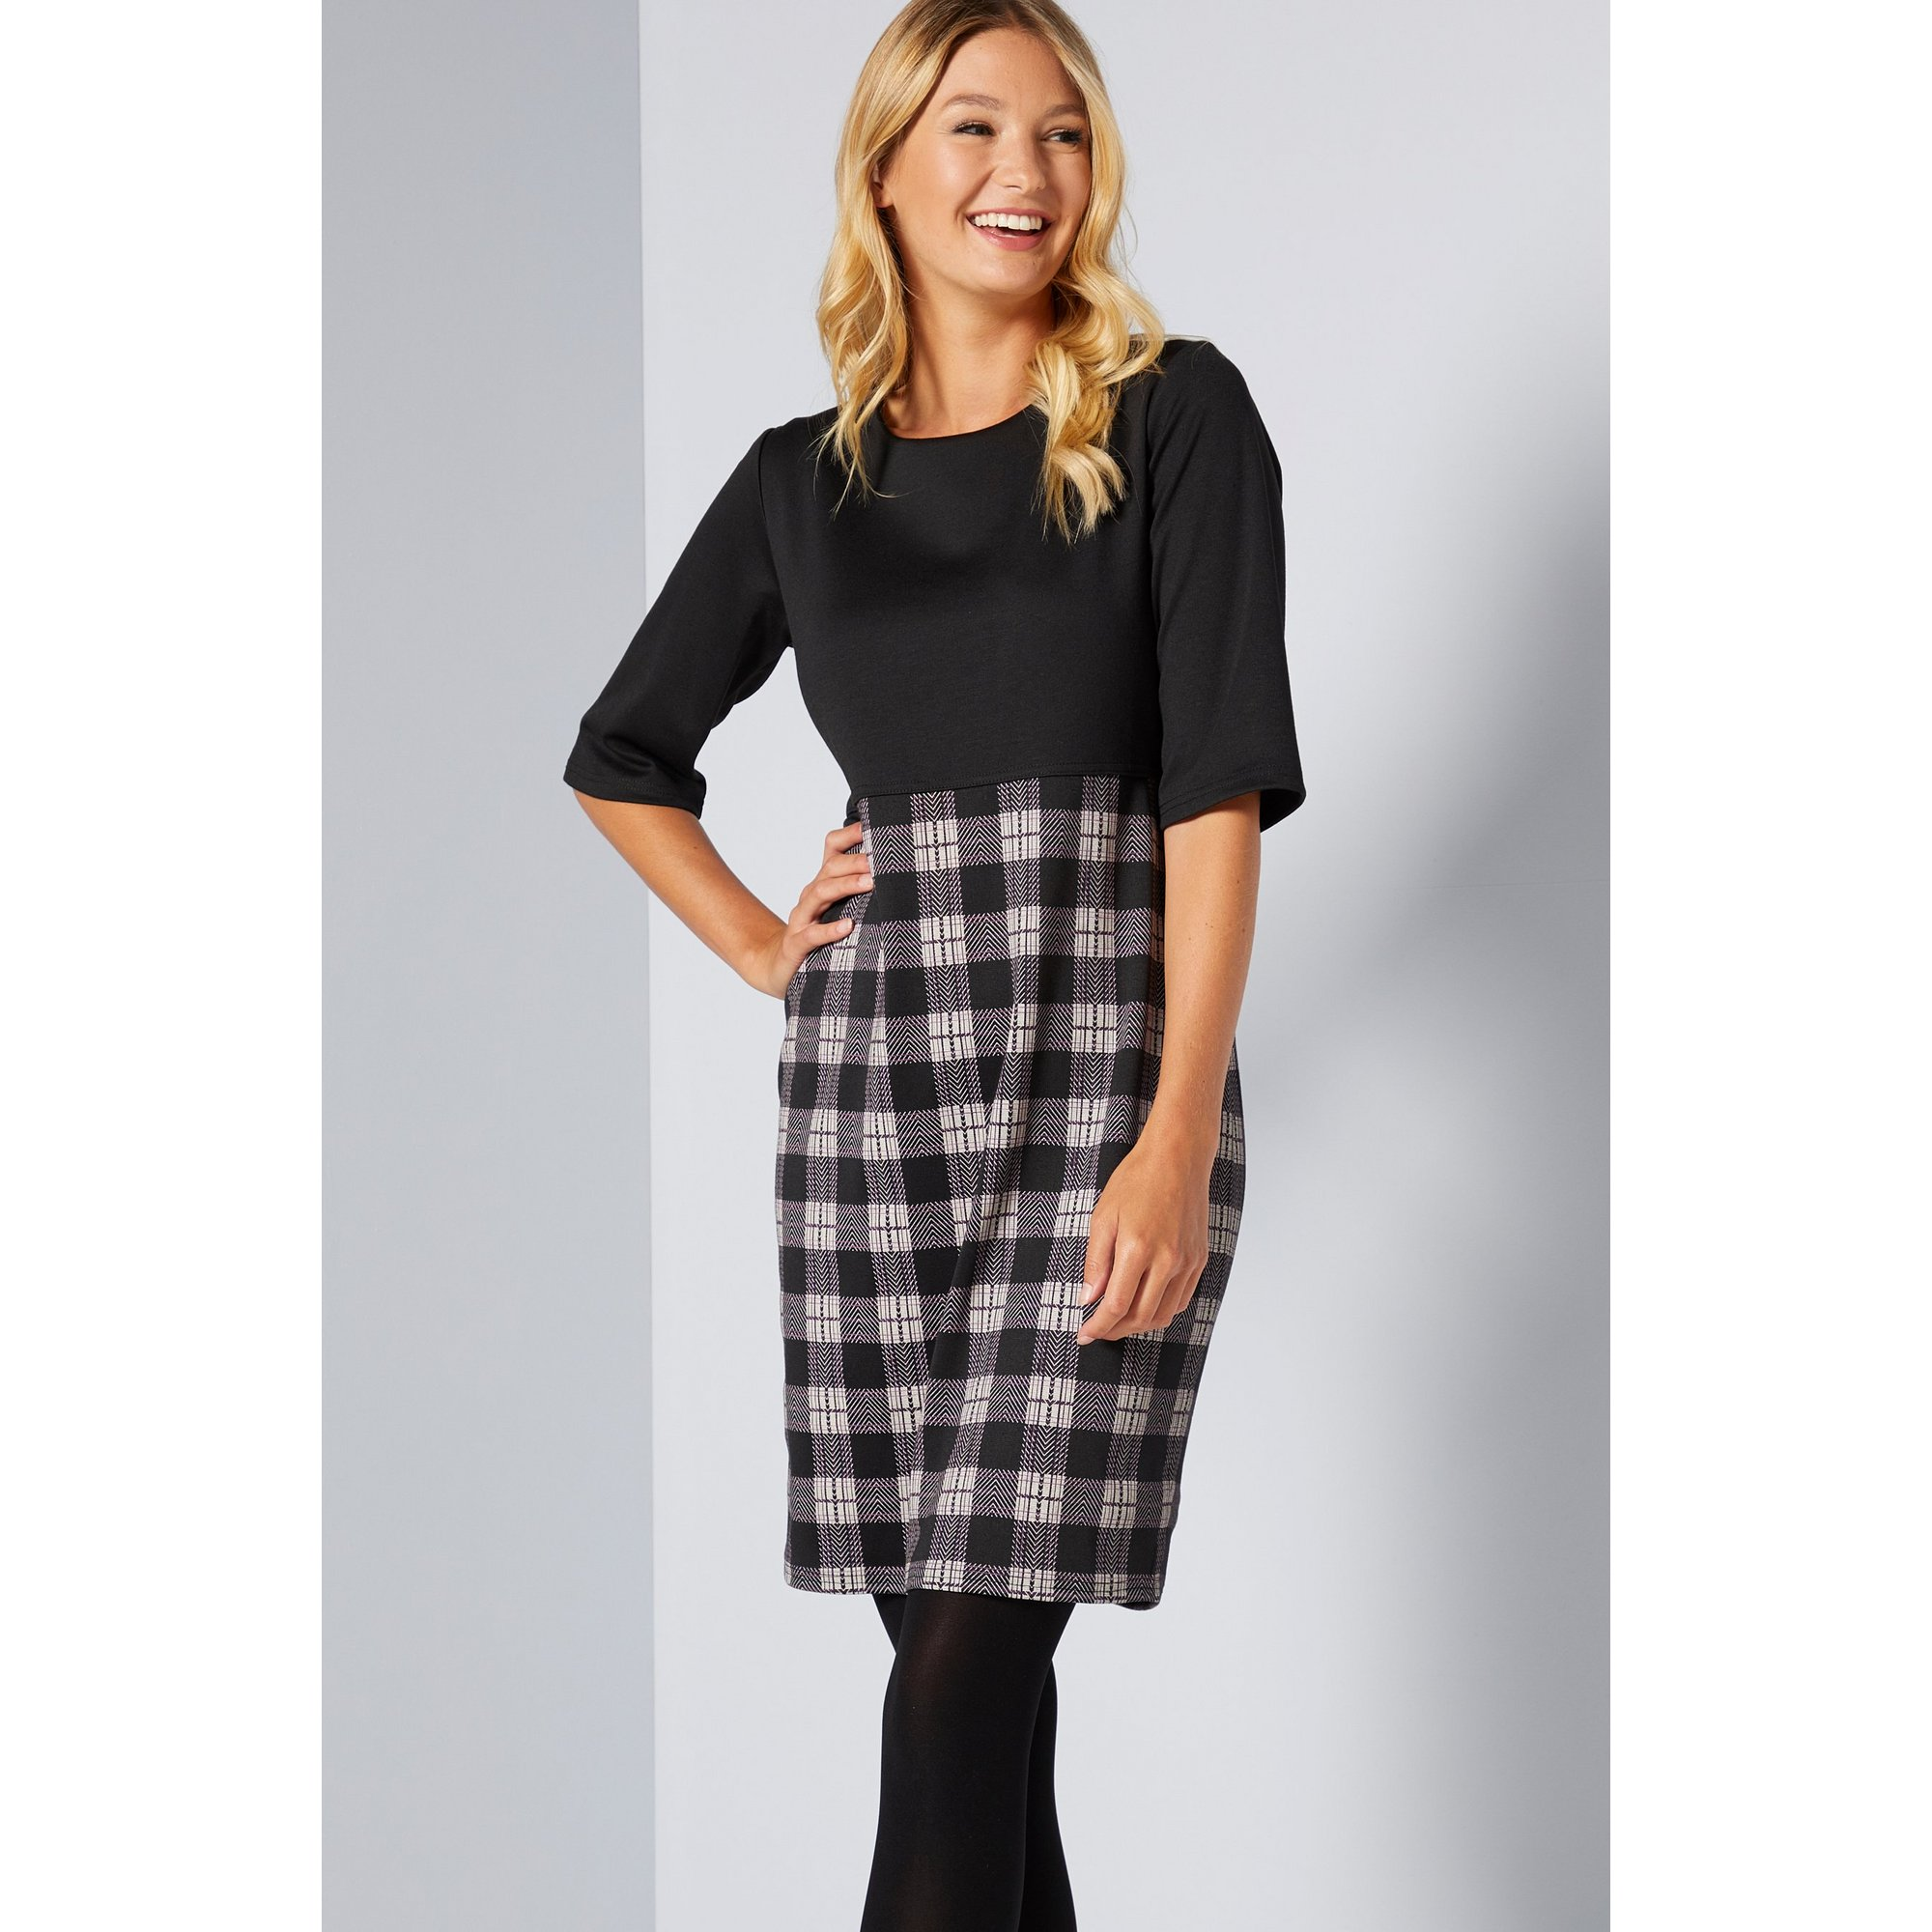 Image of 2-in-1 Black/Beige Jersey Check Dress